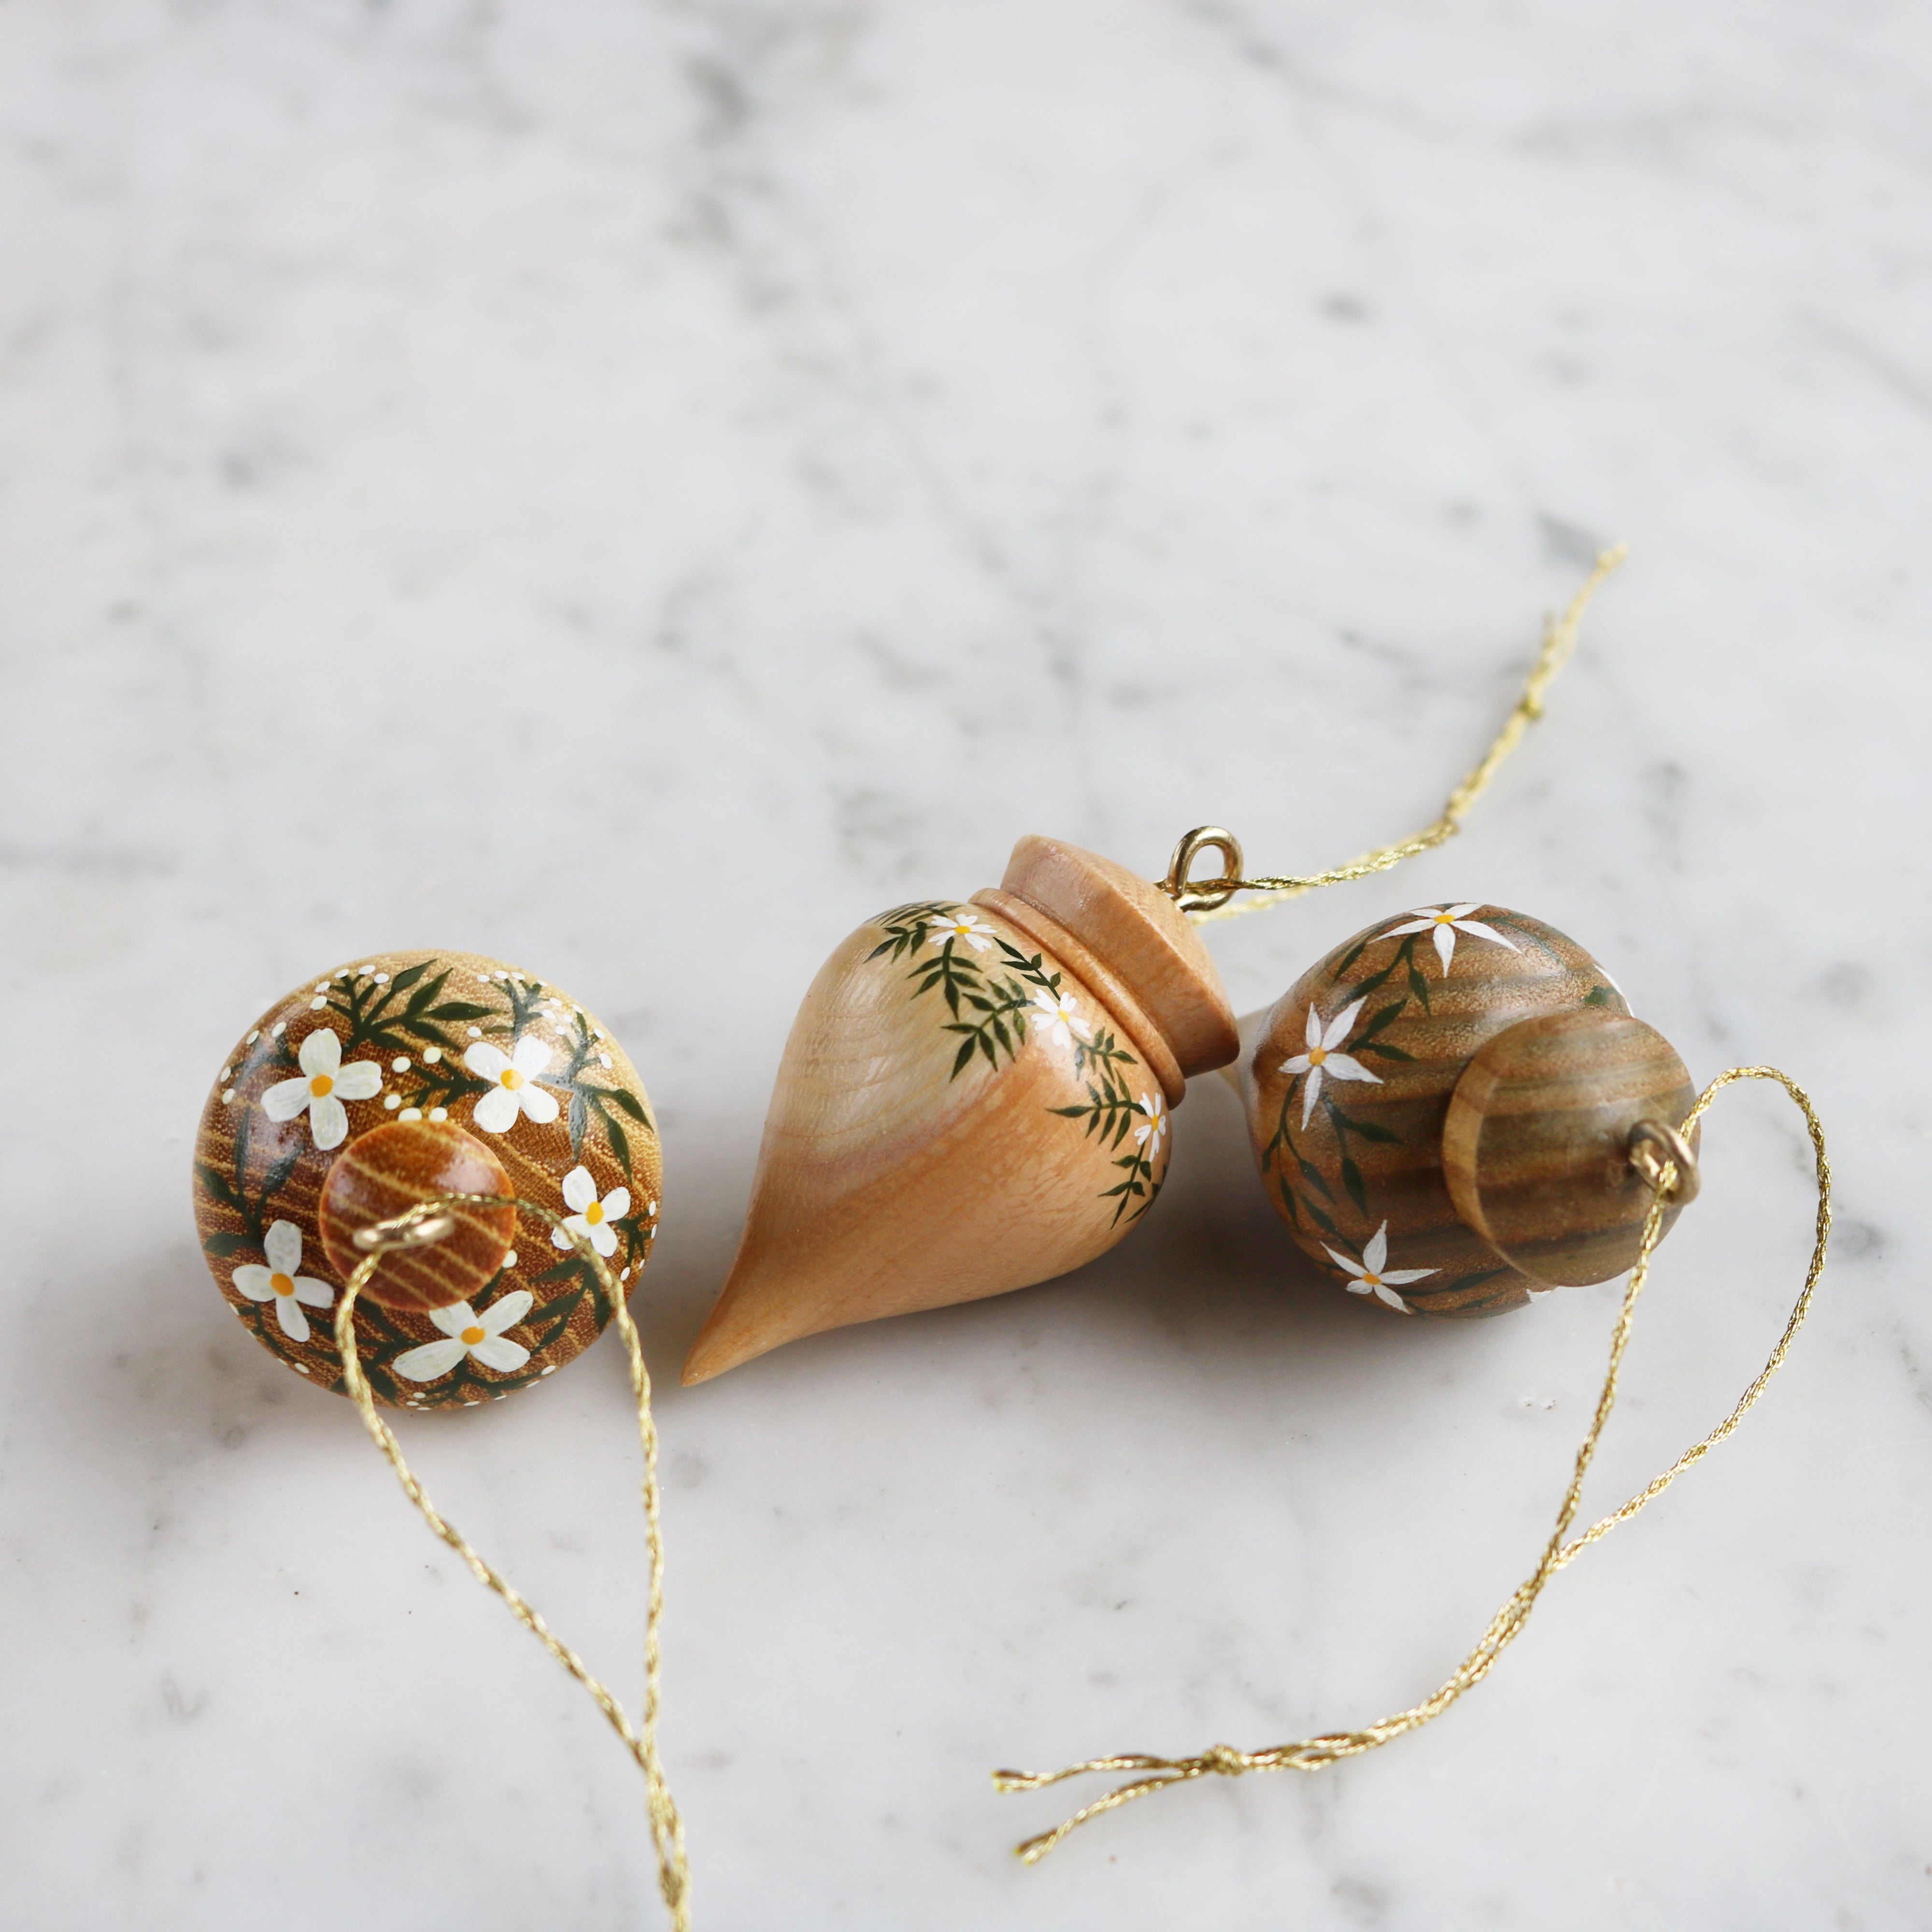 Set of 3 Mini Wooden Ornaments | Set No. 7